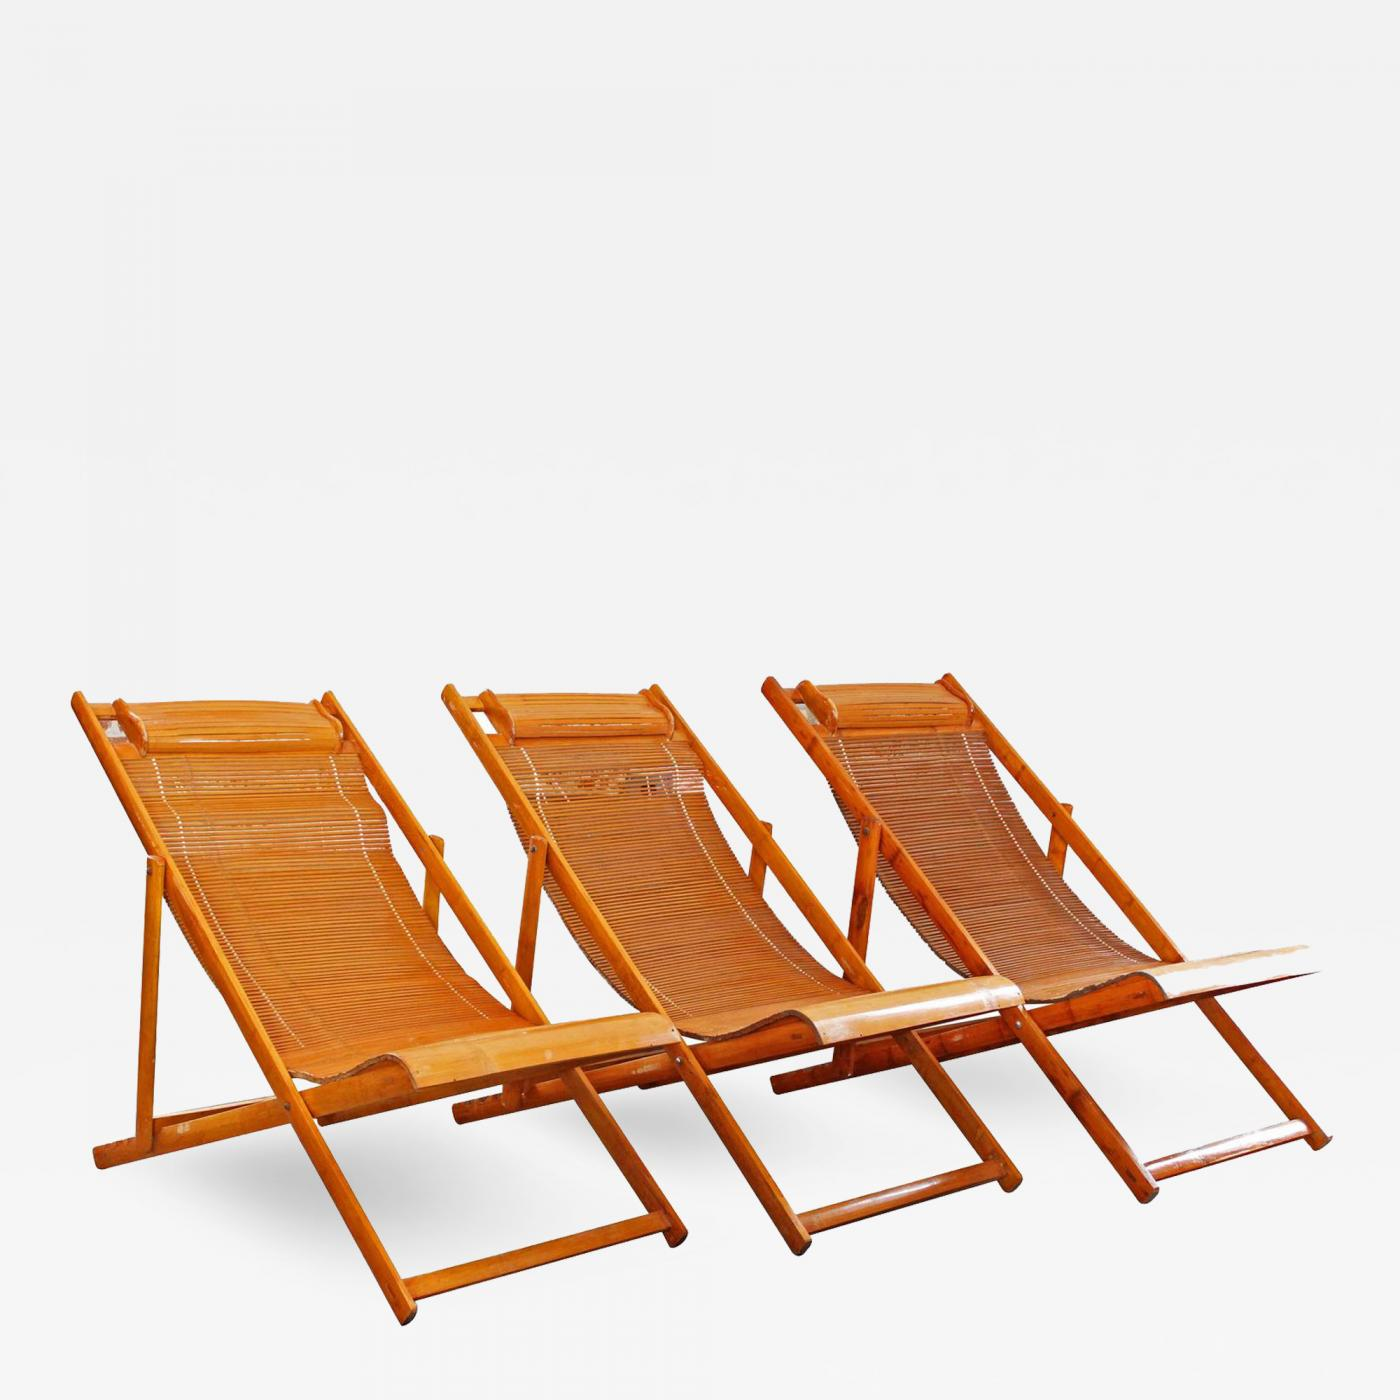 outdoor folding lounge chairs saddle seat reviews vintage bamboo wood japanese deck fold up listings furniture seating